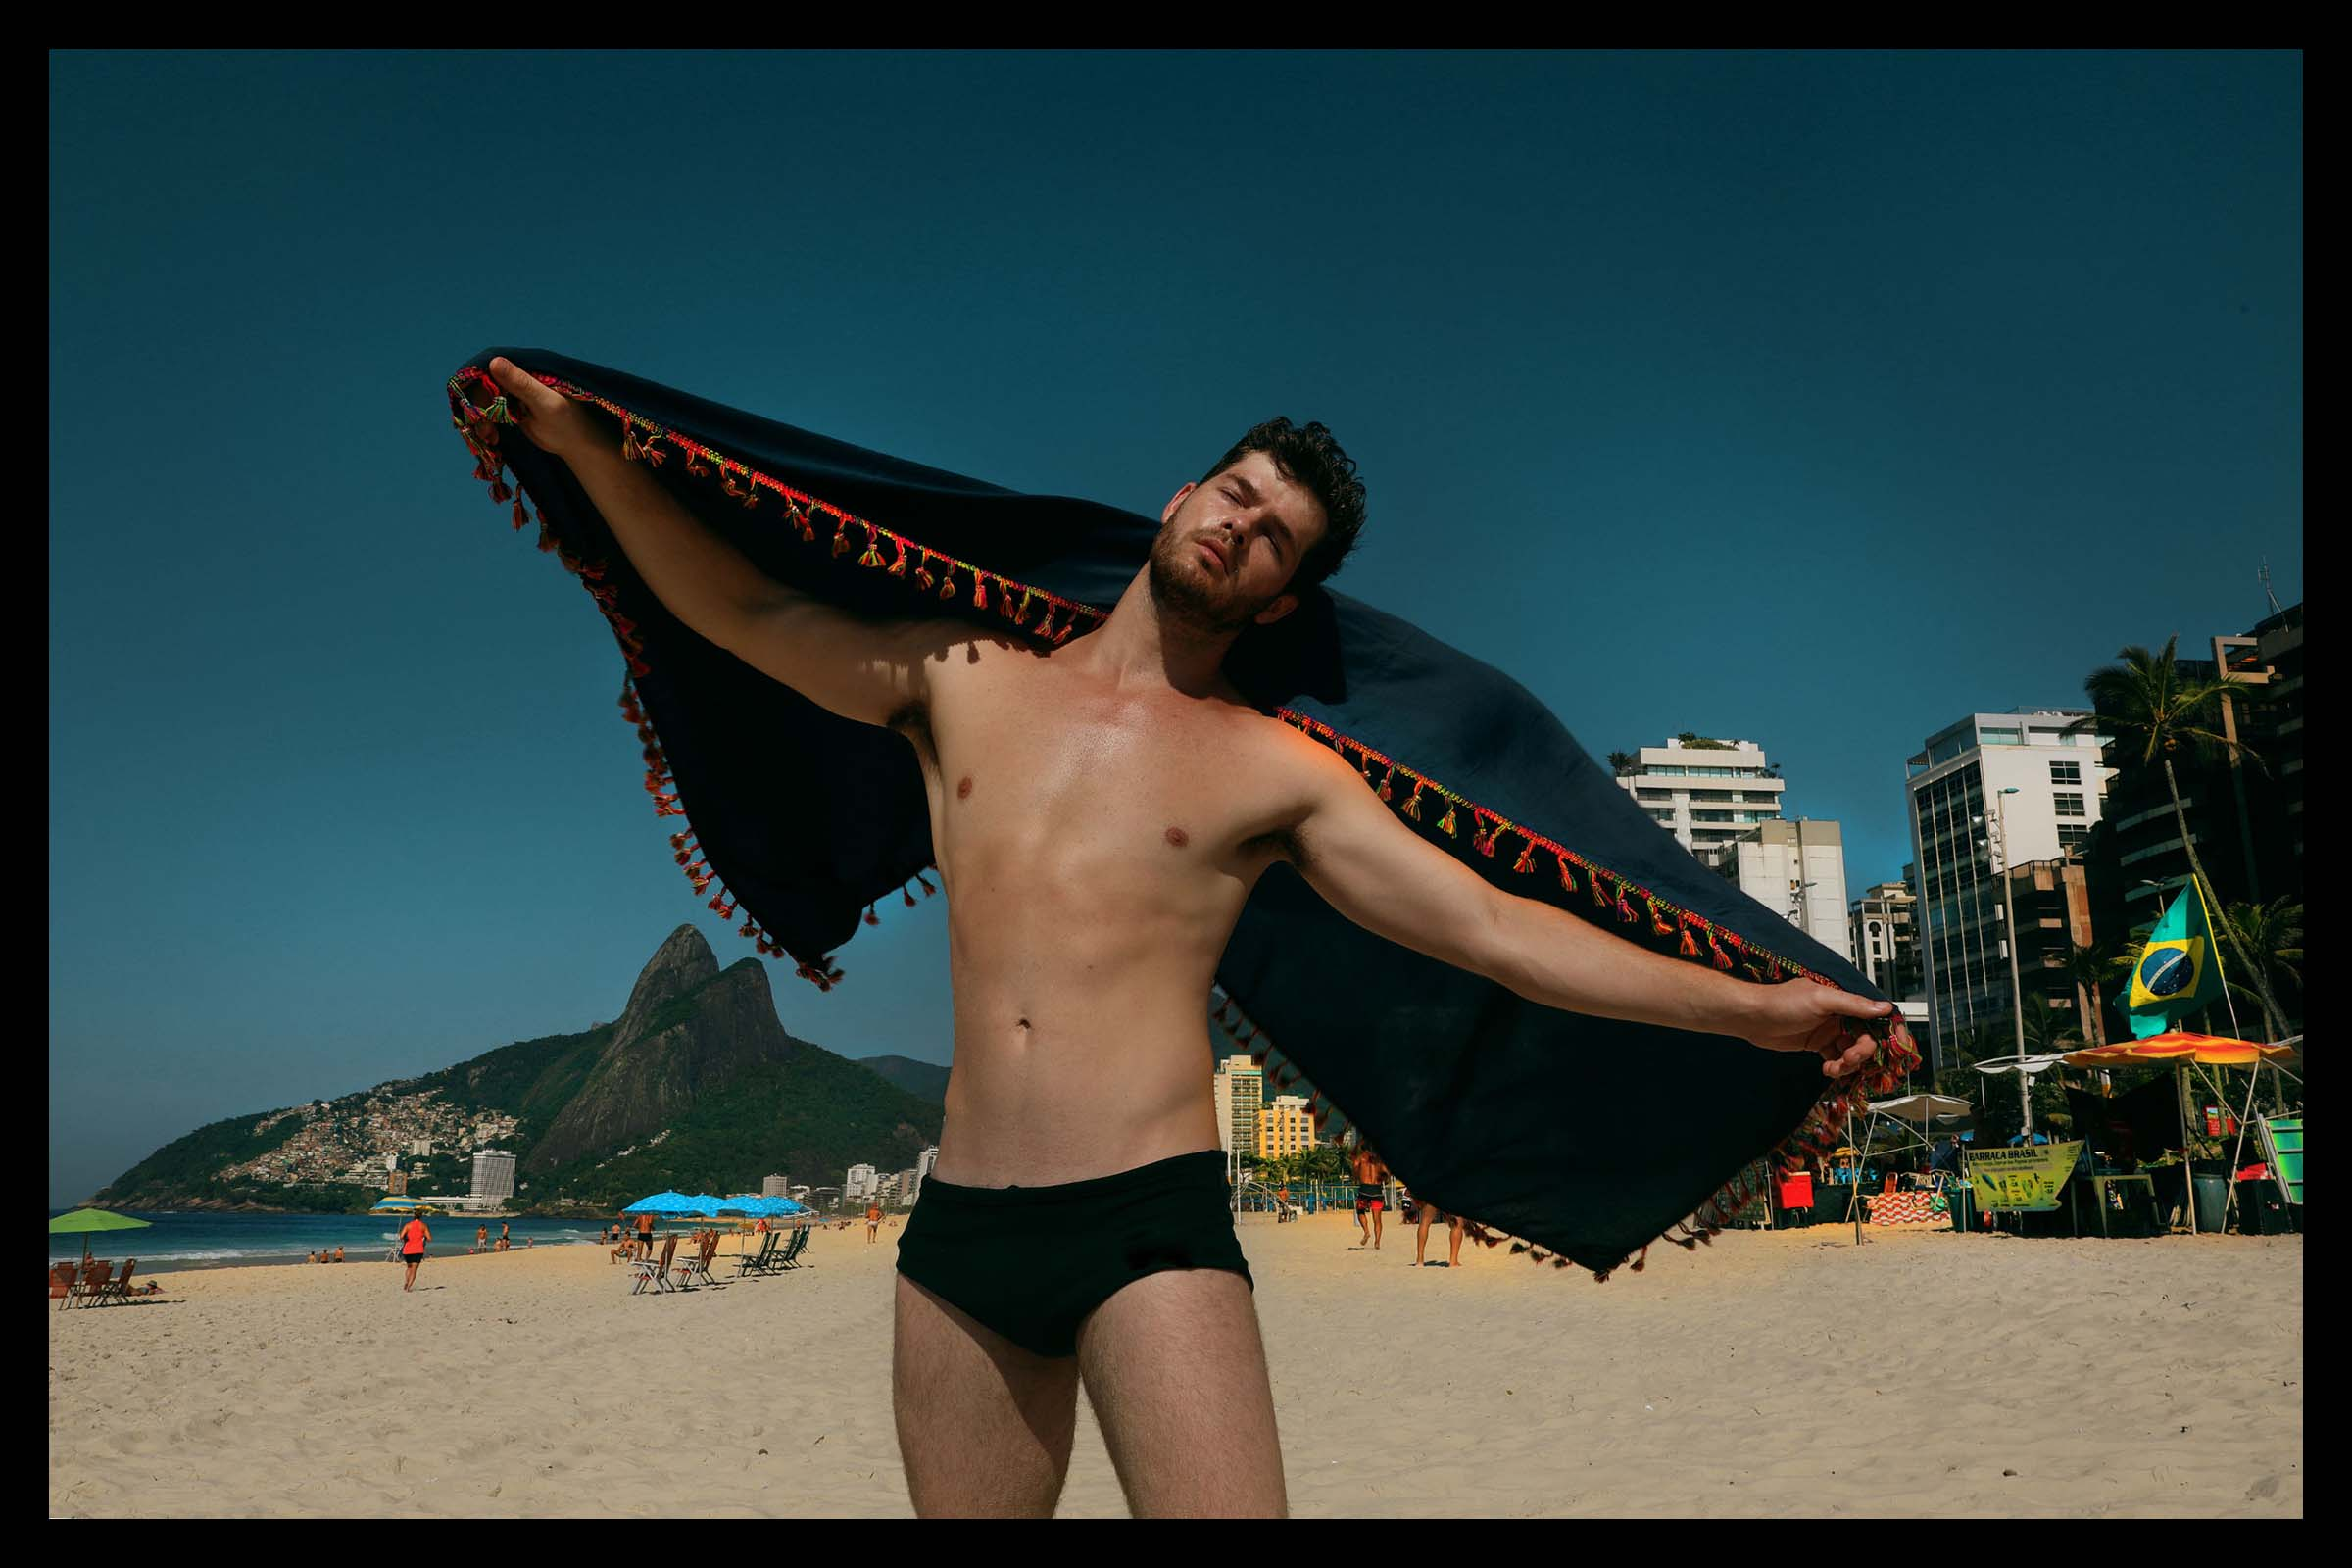 Miguel Bruinsma by Filber Kung for Brazilian Male Model